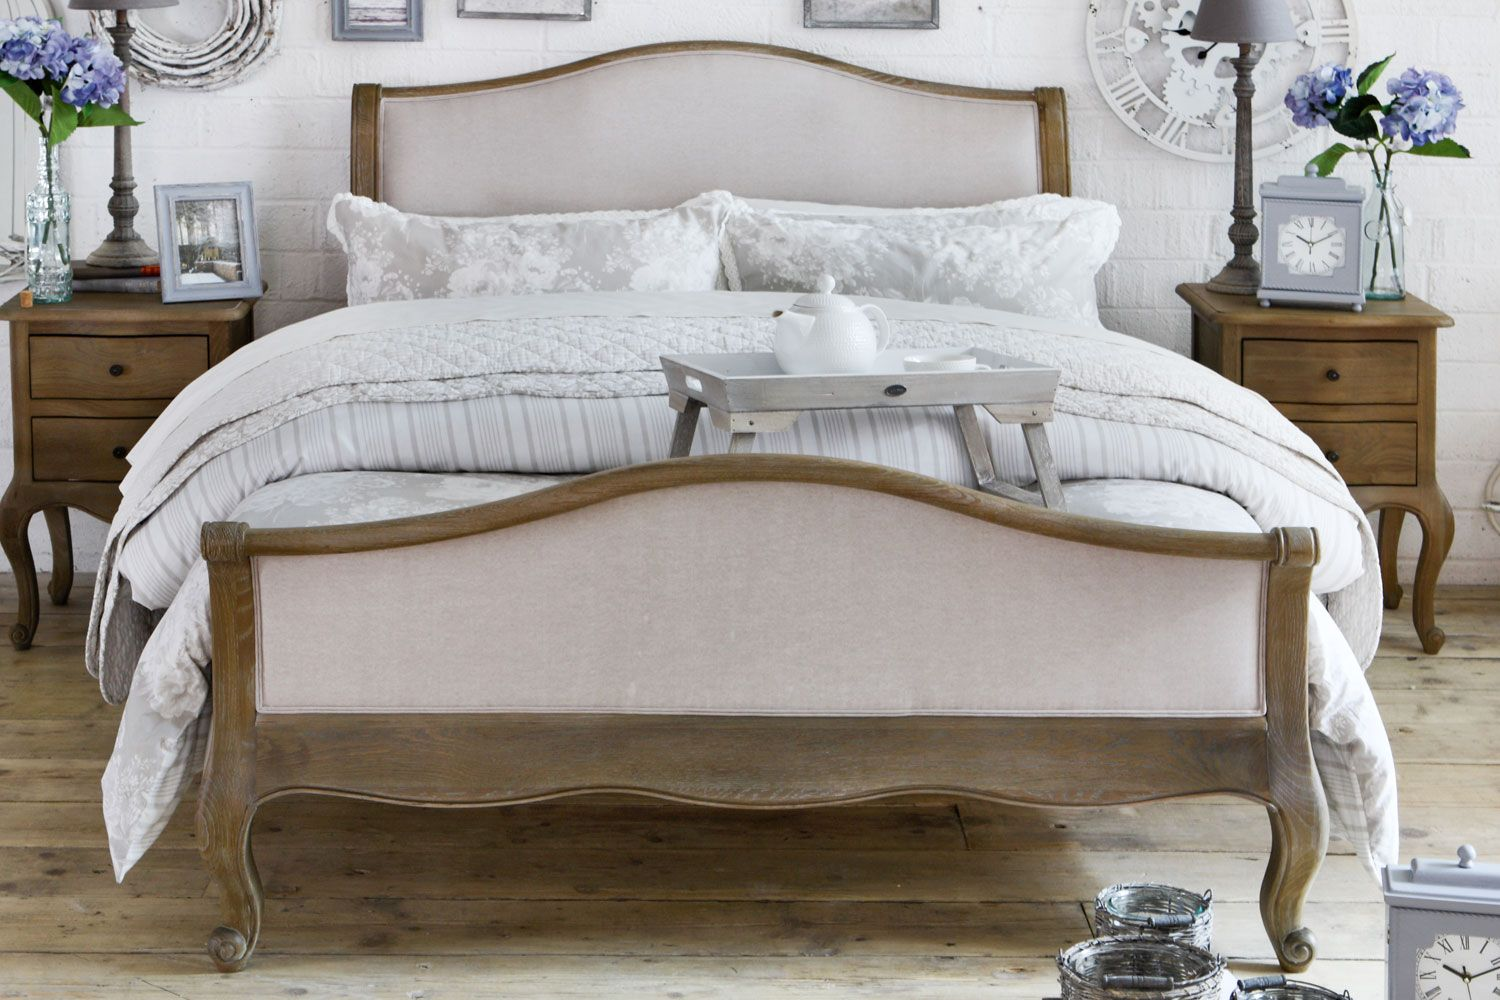 Elinore bed frame shop at harvey norman home furniture elinore bed frame shop at harvey norman jeuxipadfo Choice Image